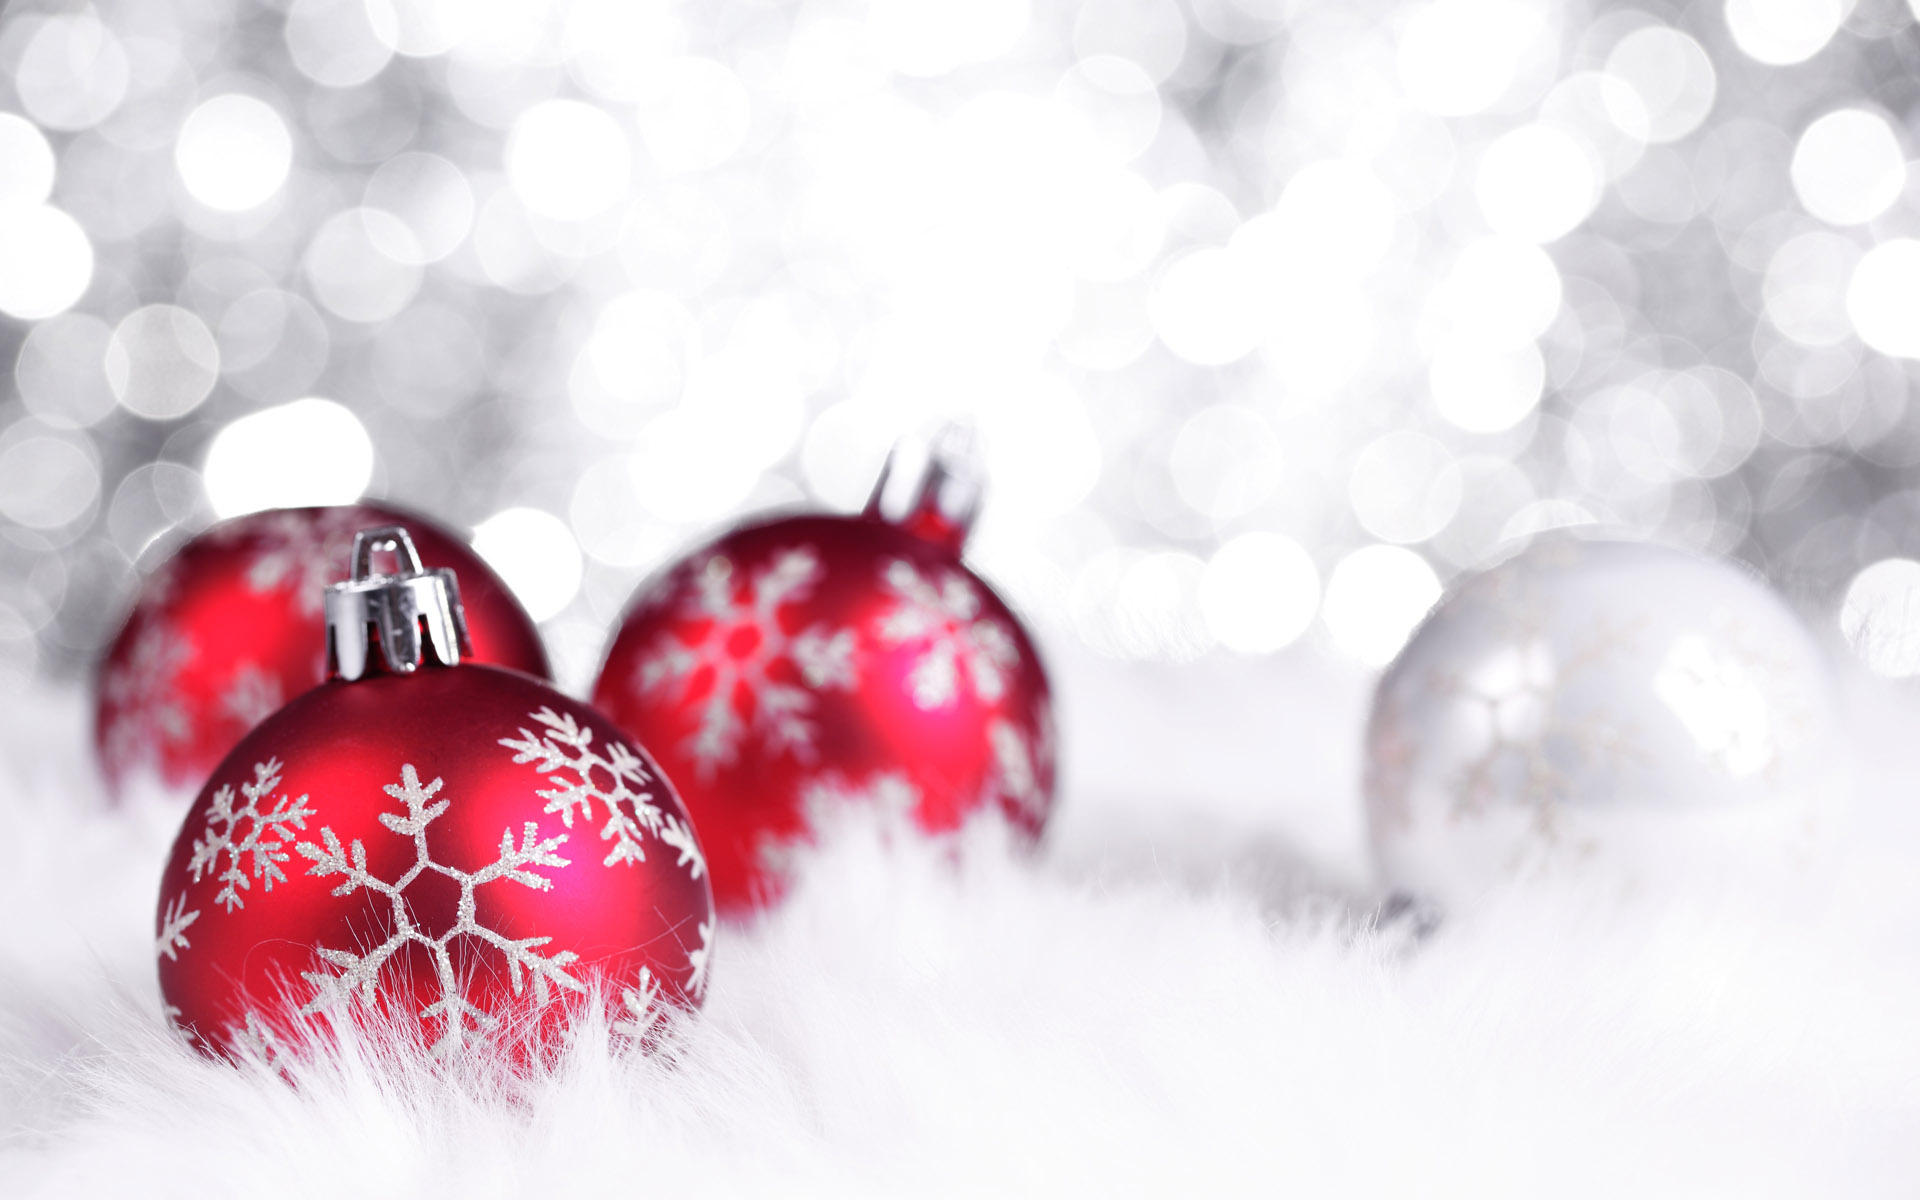 christmas wallpaper hd 8456 1920x1200 px ~ hdwallsource